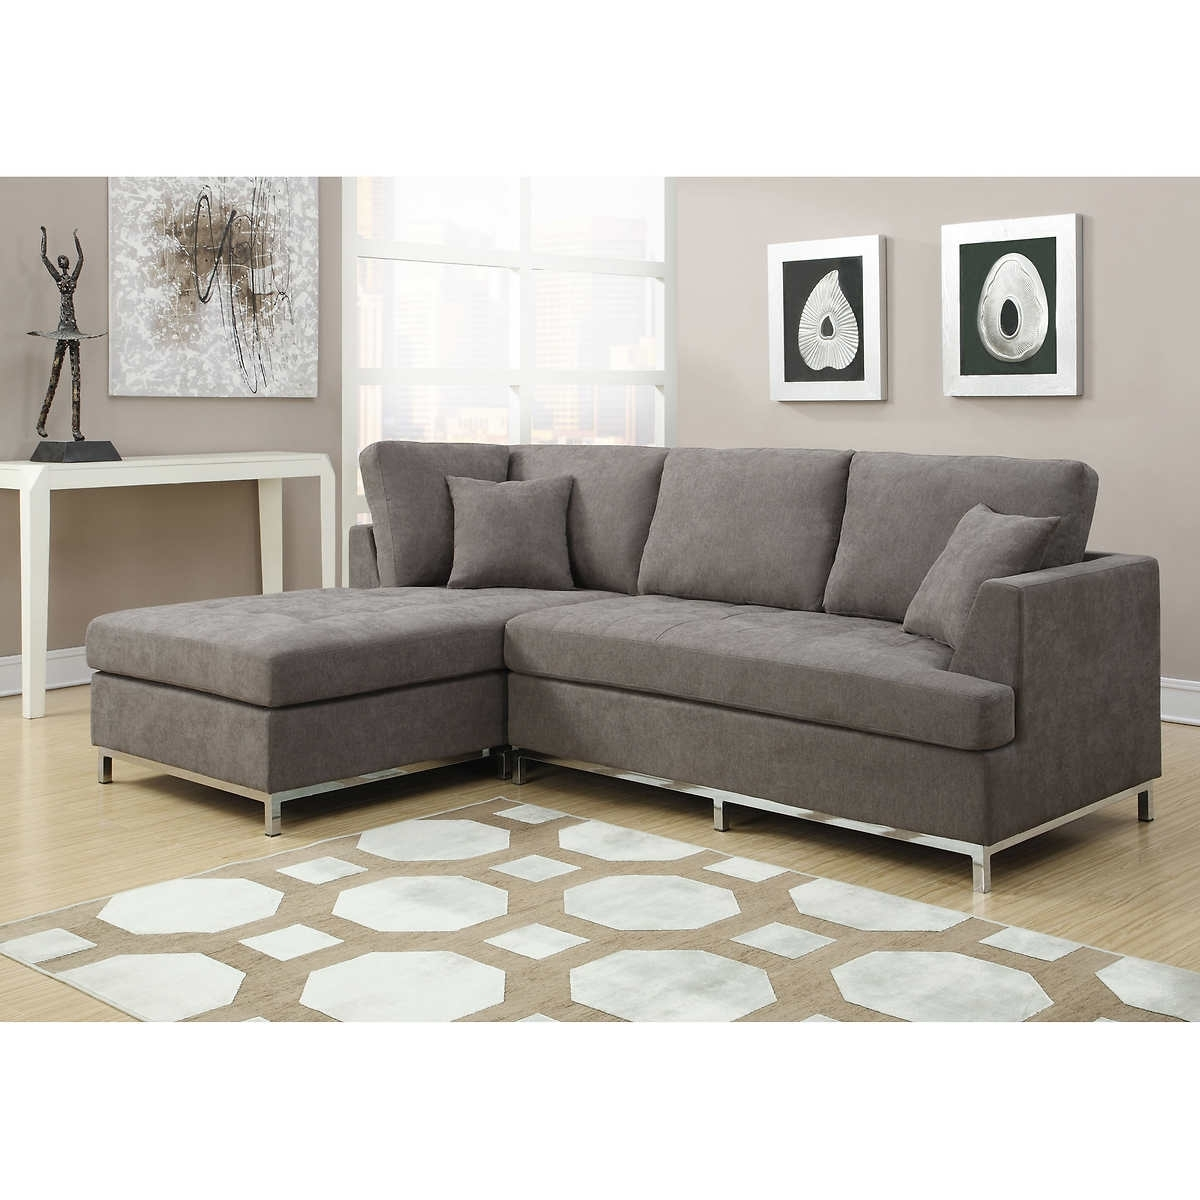 Gray Sectional Sofa Costco – Home Design Ideas And Pictures Regarding 2018 Tucson Sectional Sofas (View 11 of 20)